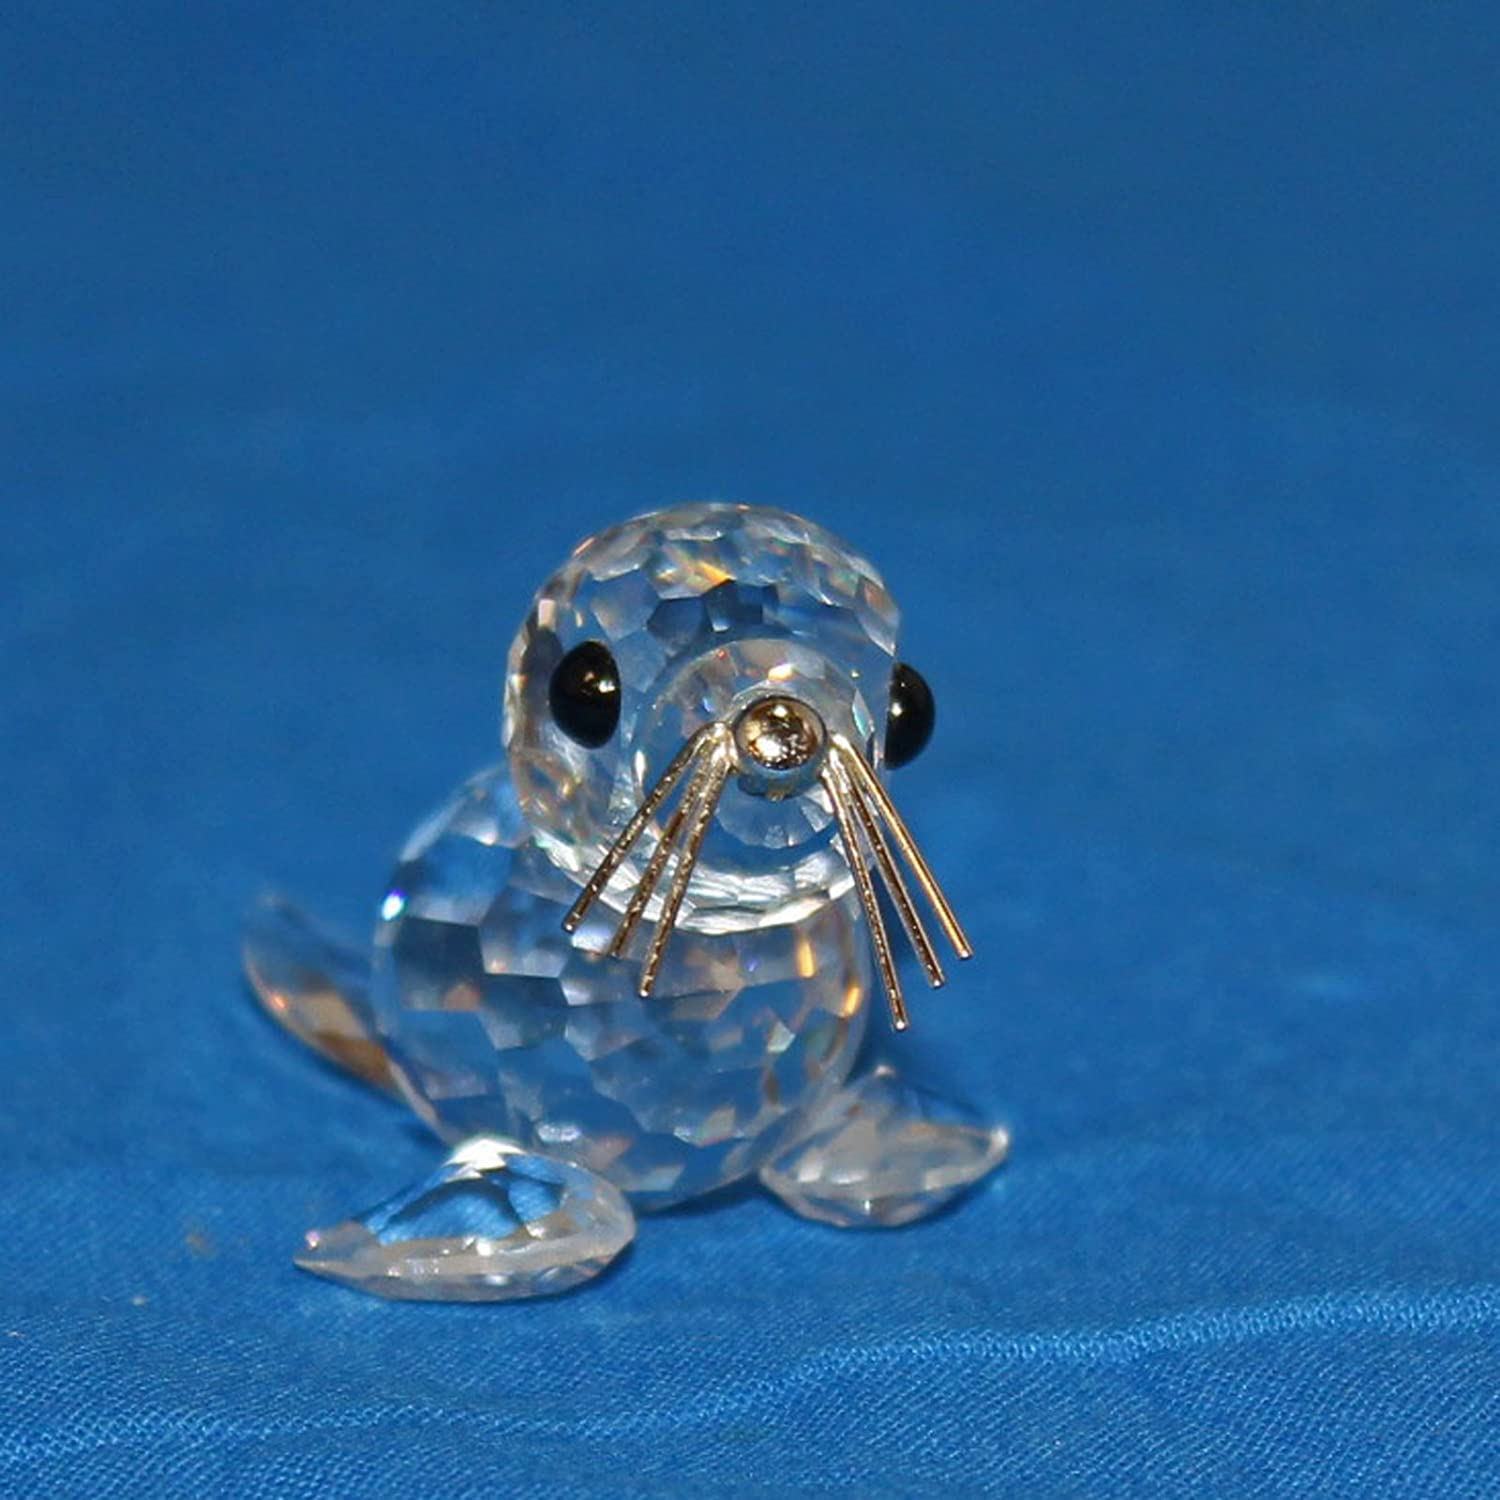 Swarovski Crystal Figurine, 012530 V2 - Mini Baby Seal with Silver Whiskers